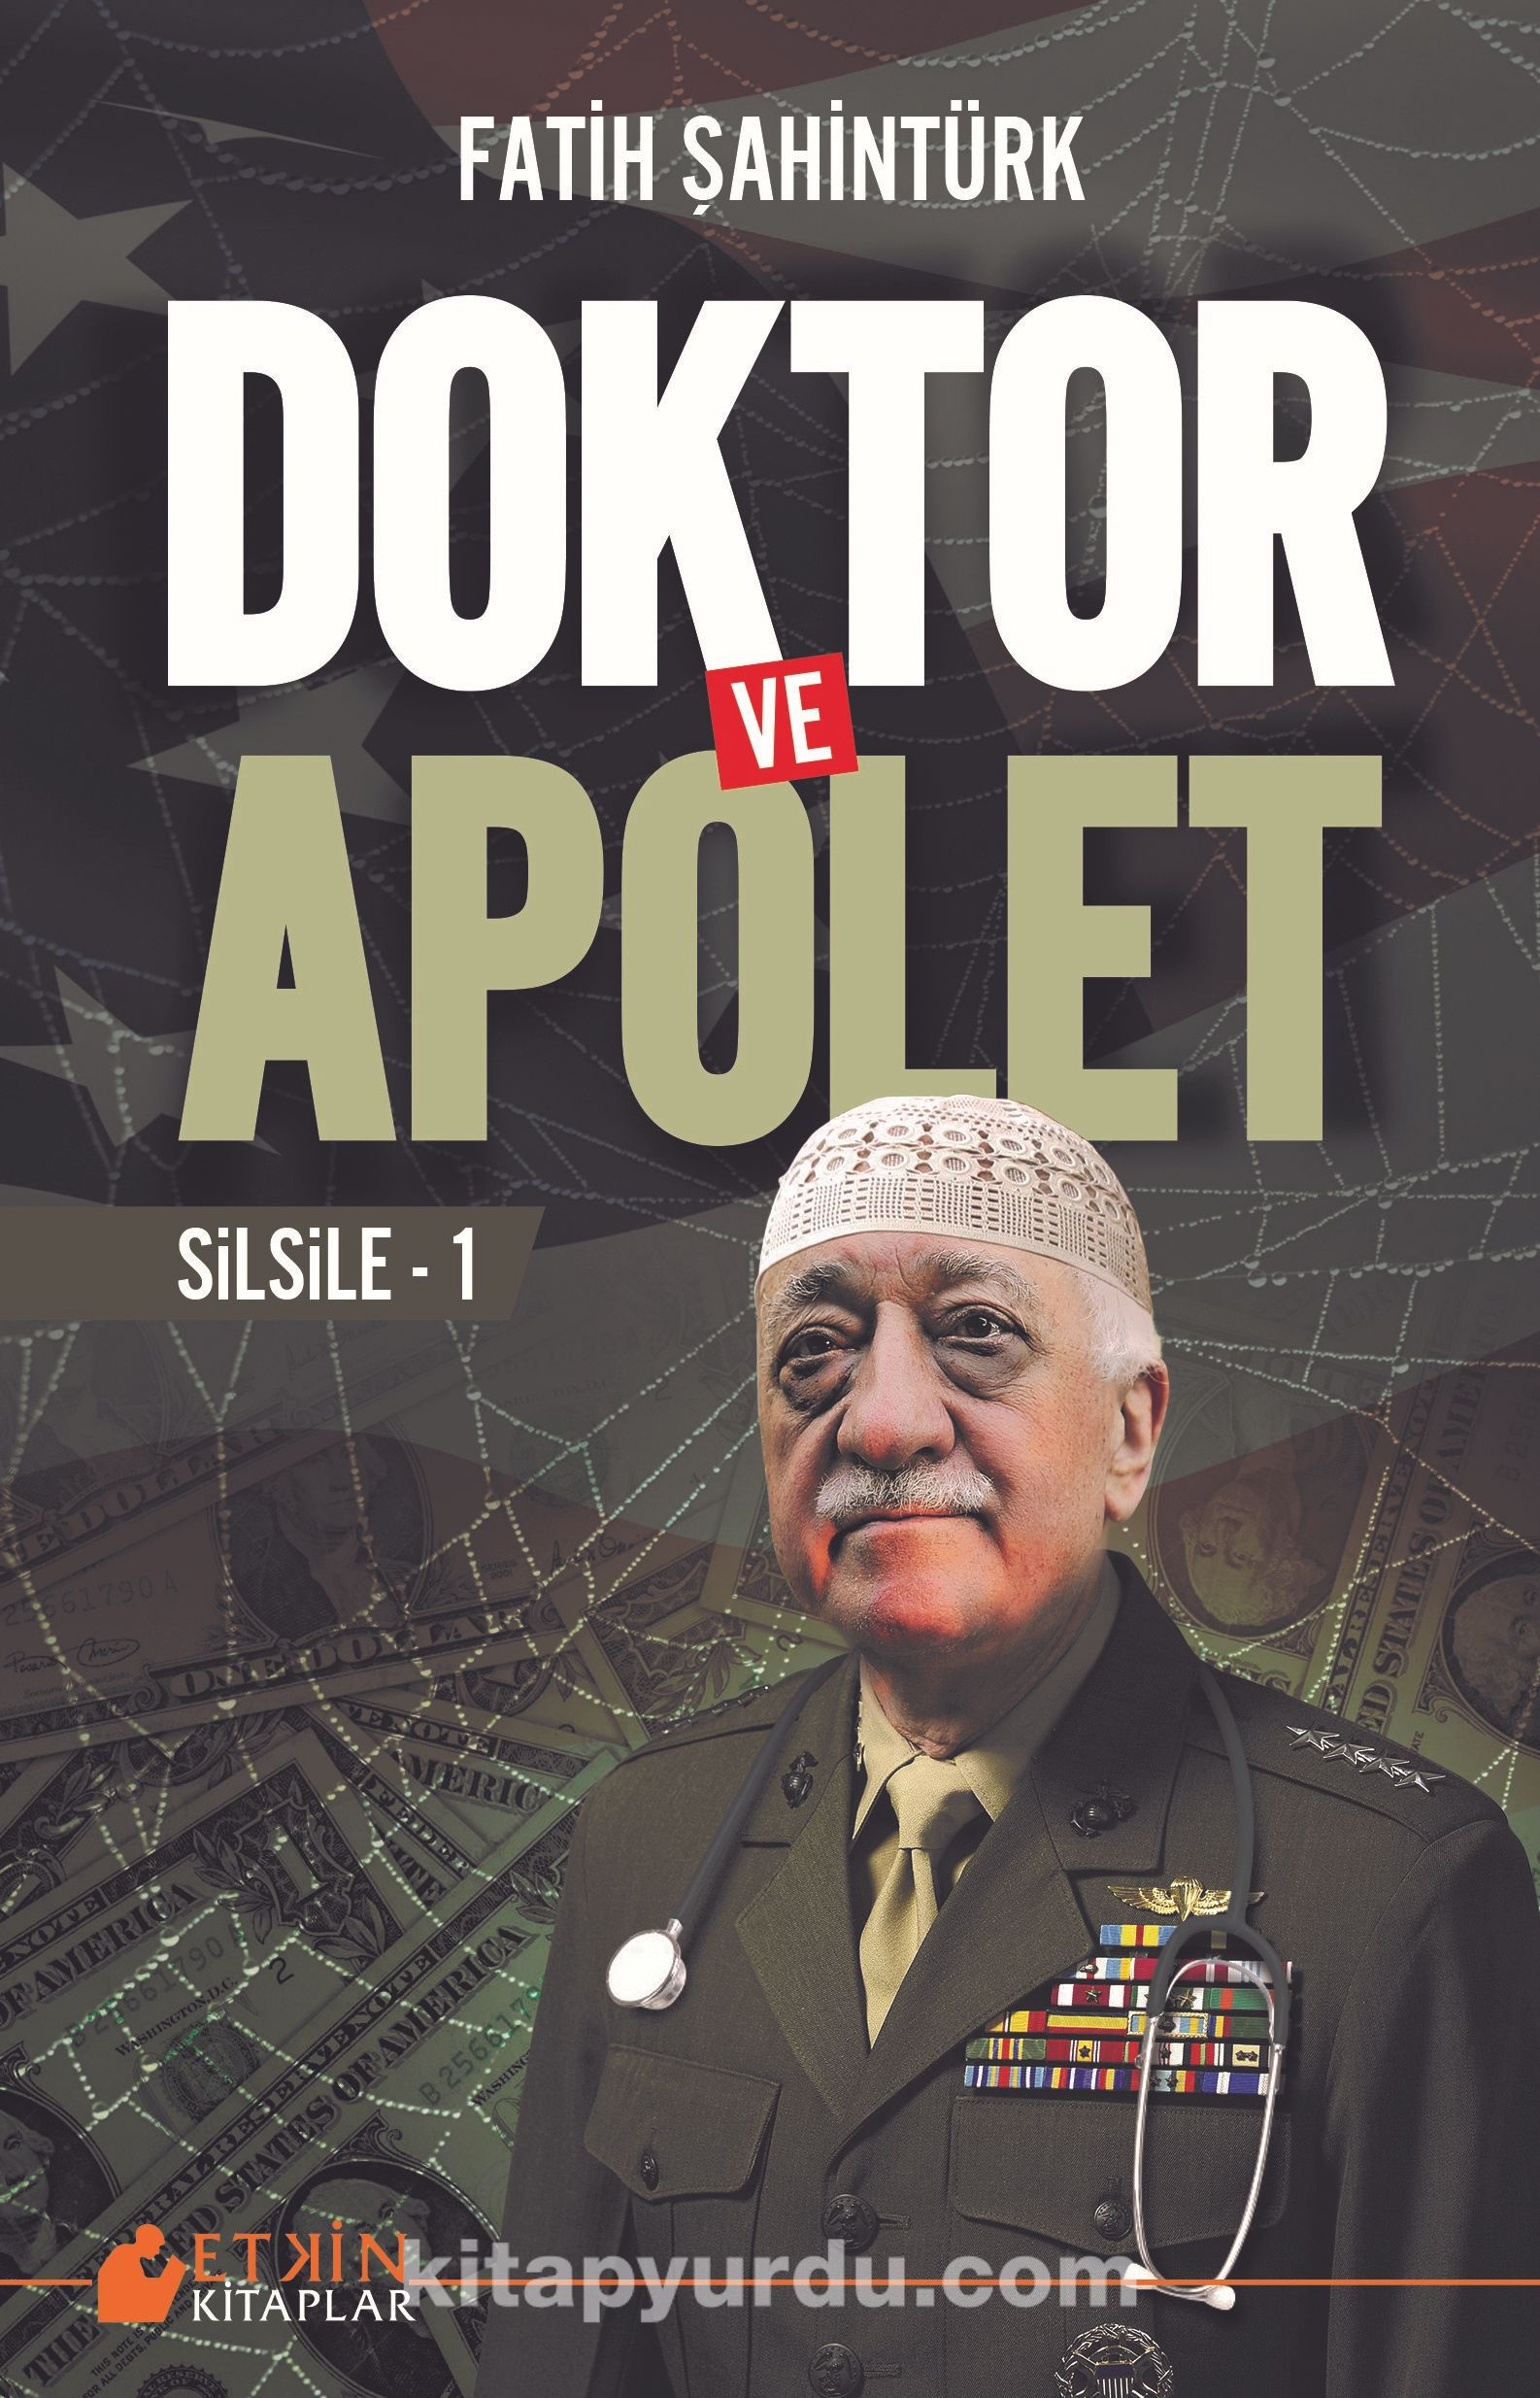 Doktor ve Apolet / Silsile 1